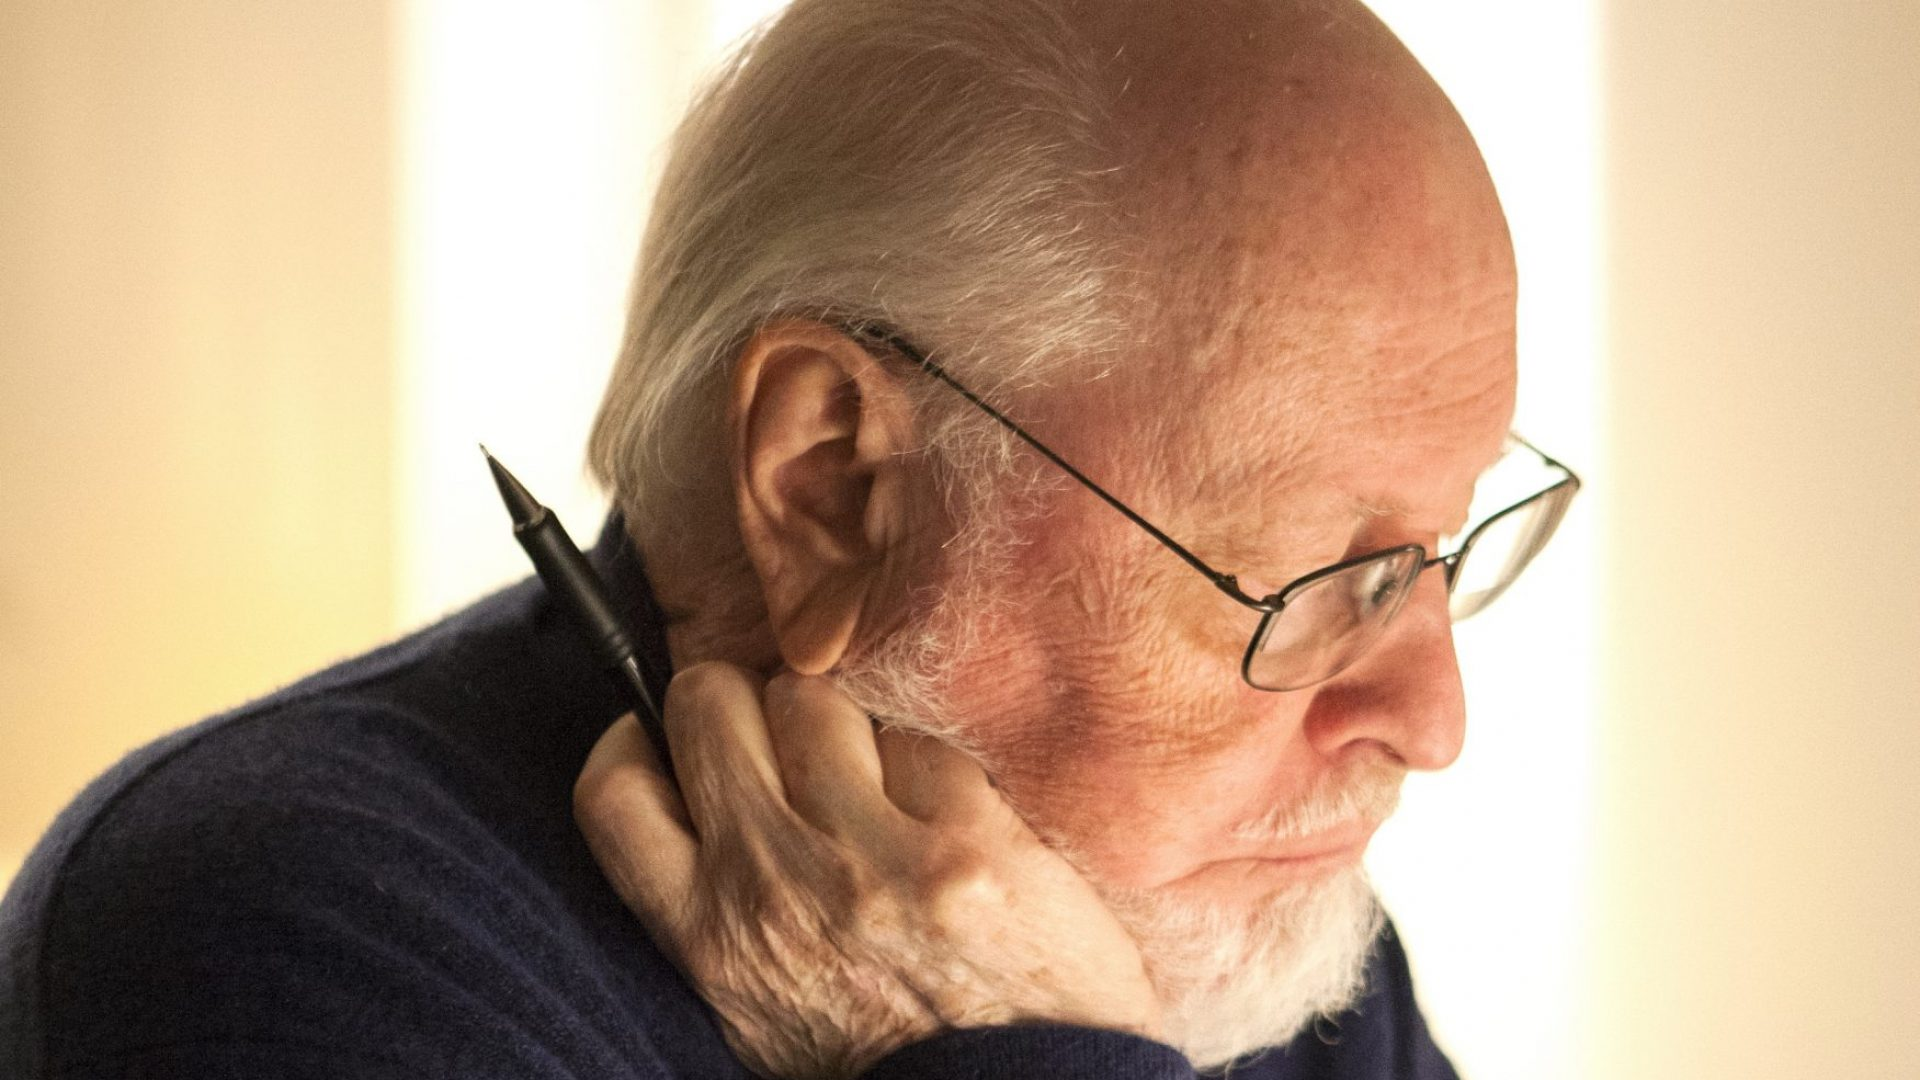 John Williams looking at a piece of paper